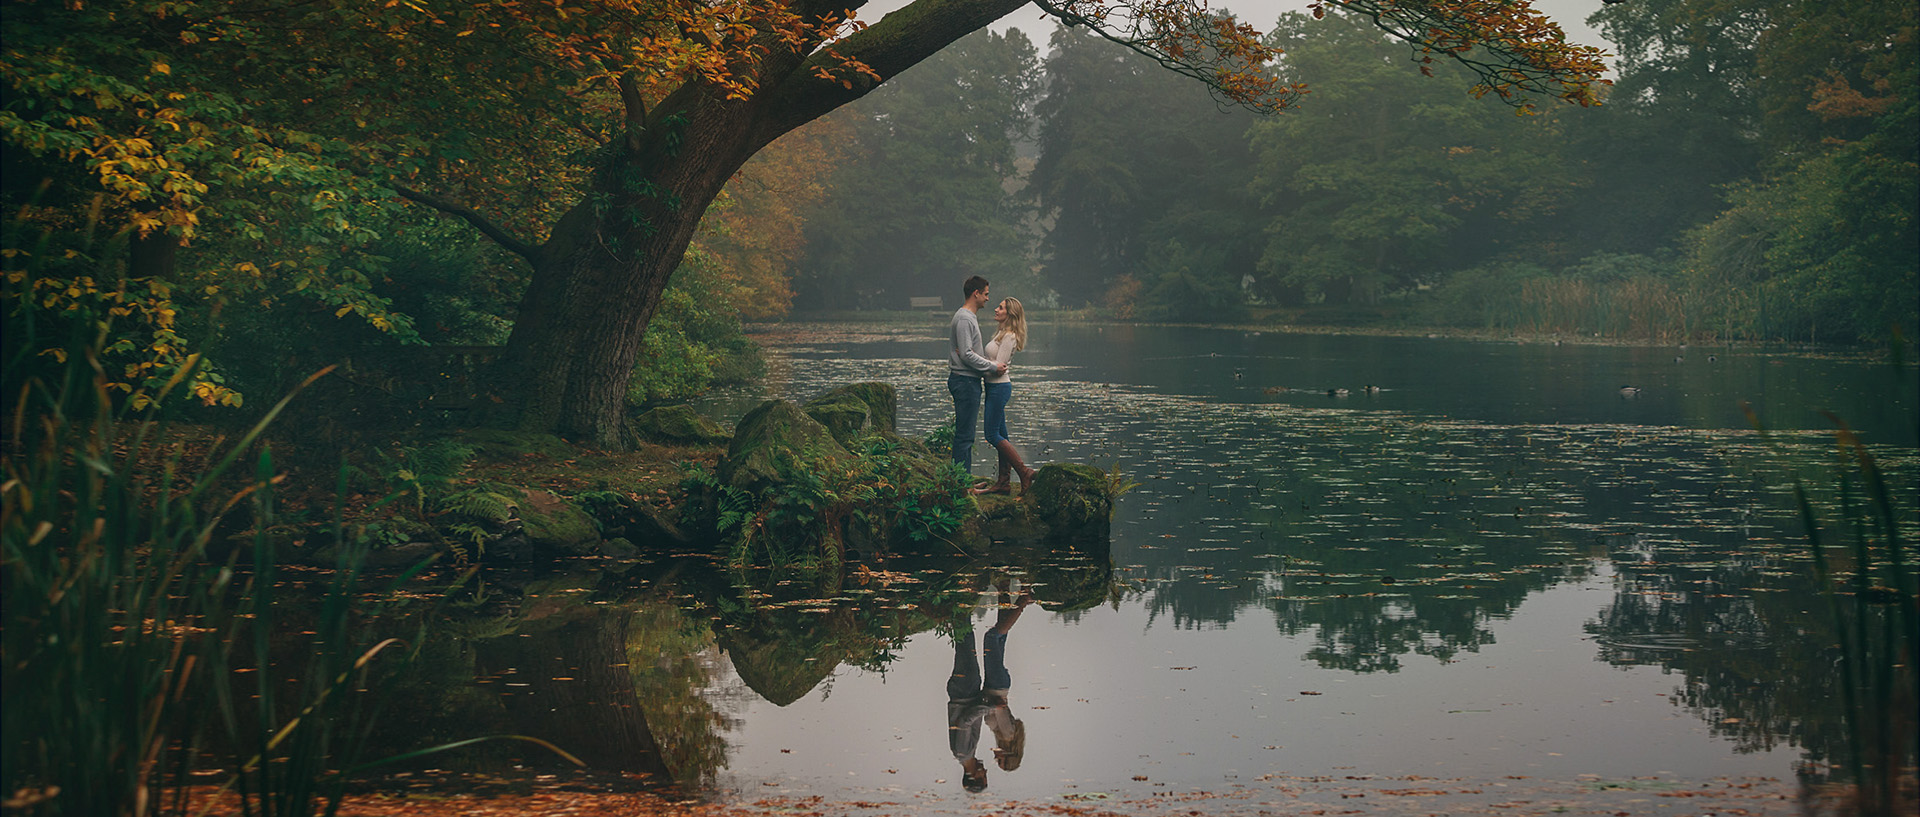 Louise and Mark Pre wedding Shoot at Swinton Park